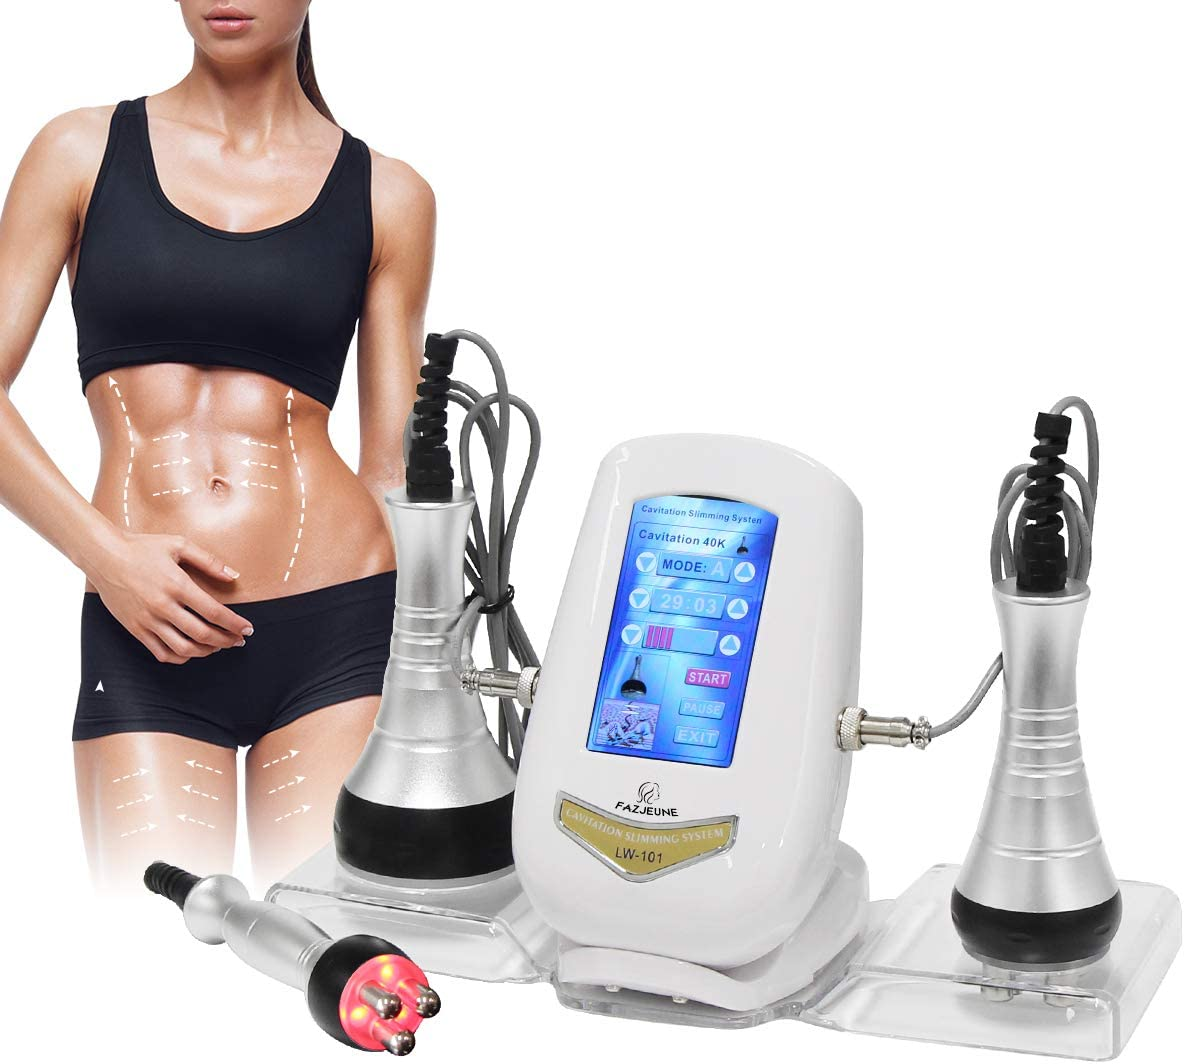 FAZJEUNE 40K Fat Massage Tools, Multifunctional Body Facial Beauty Massager Face Skin Care Facial Lifting Face Smooth Skin Line for Neck Waist Thigh and Buttock 3 in1 Machine